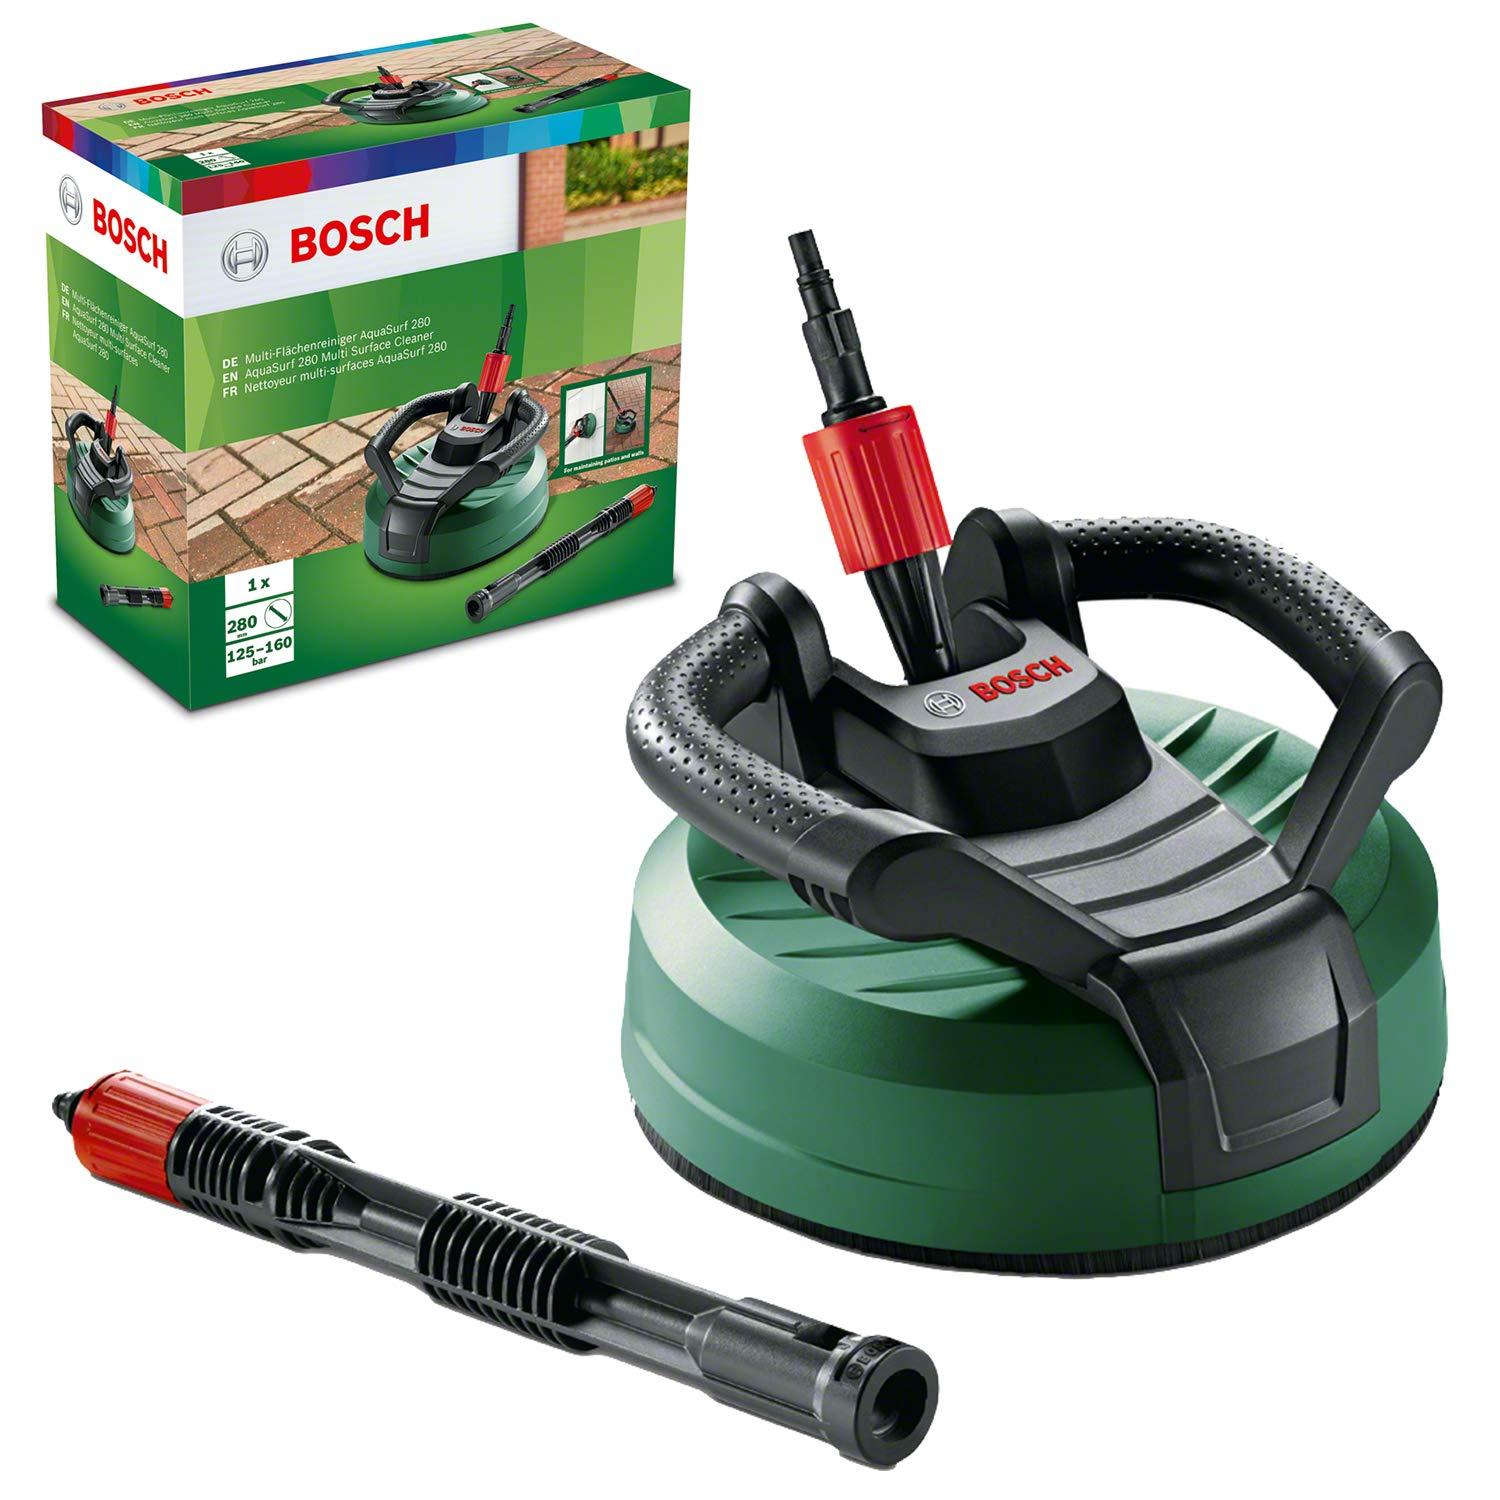 Bosch F016800467 AquaSurf 280 Multi-Surface Patio Cleaner for AQT High Pressure Washers